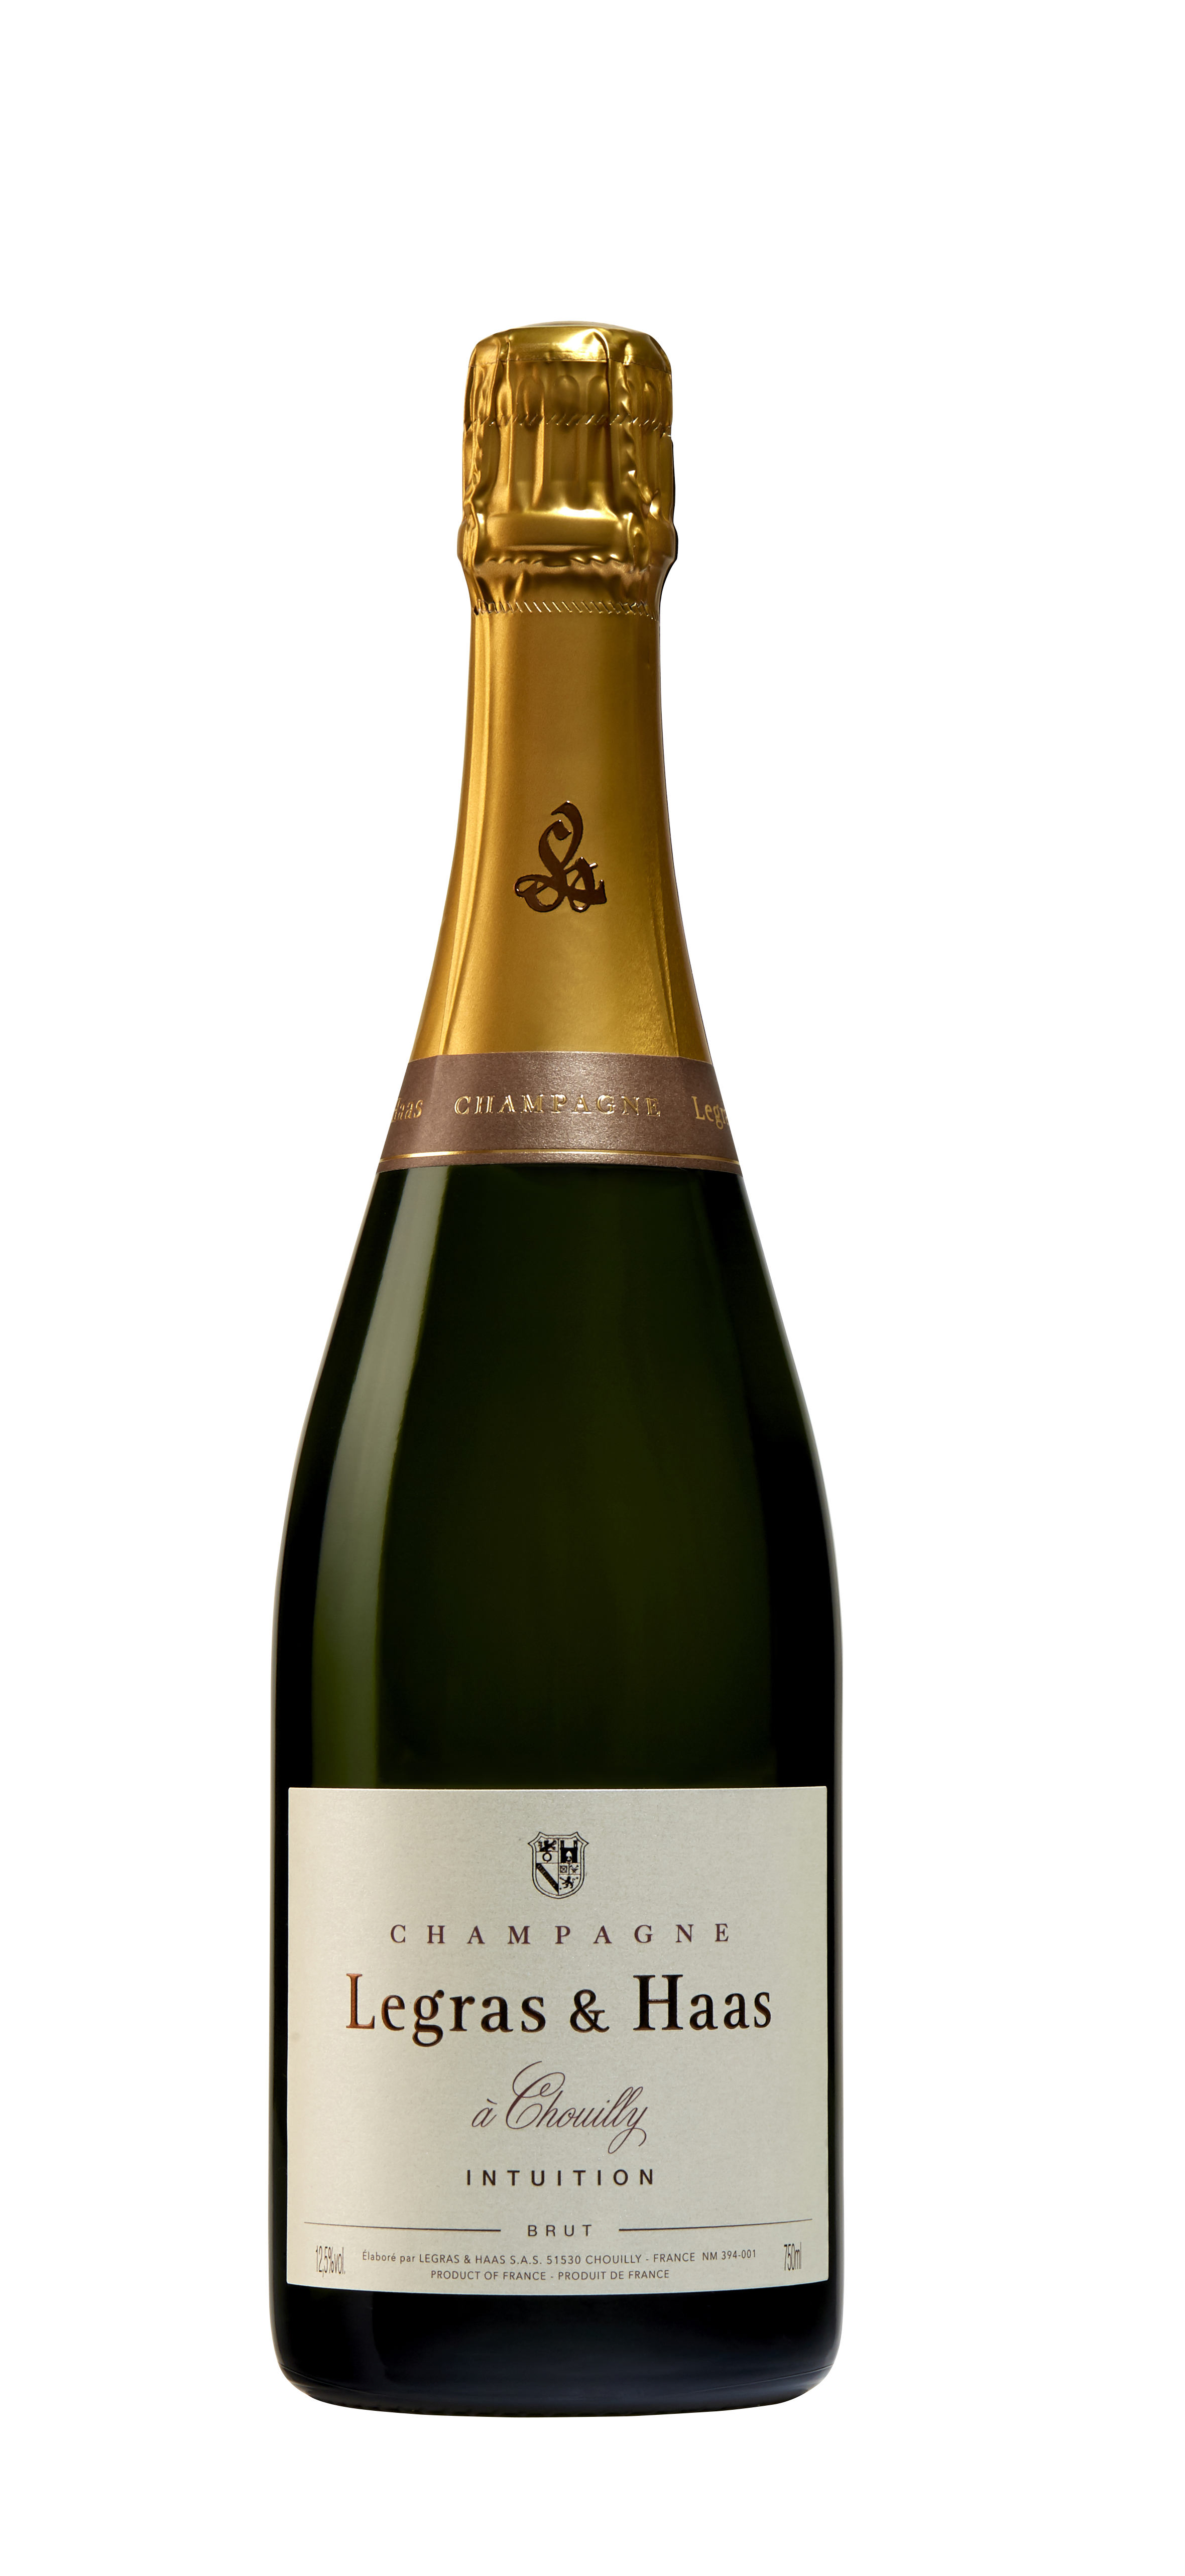 Legras & Haas Intuition Brut